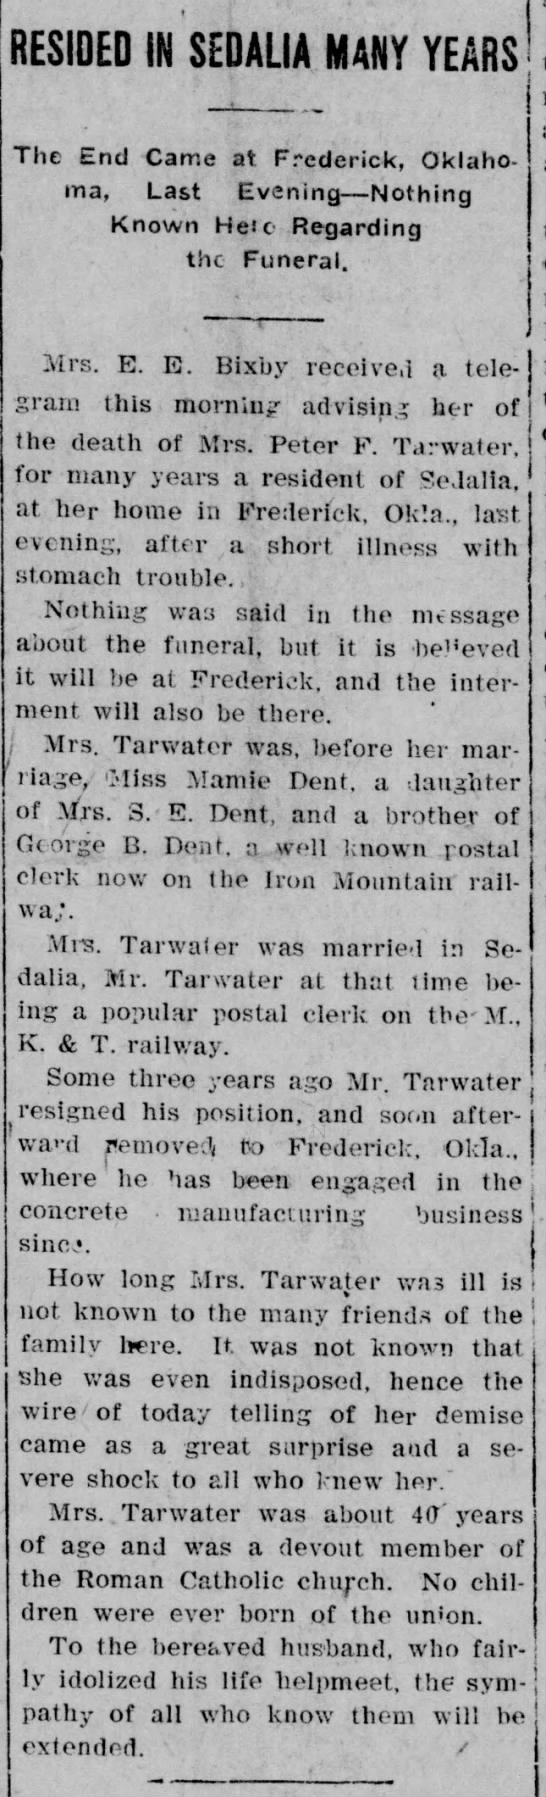 Details on Mamie Tarwater's death (wife of Peter)! The Sedalia Democrat 12/13/1907 -